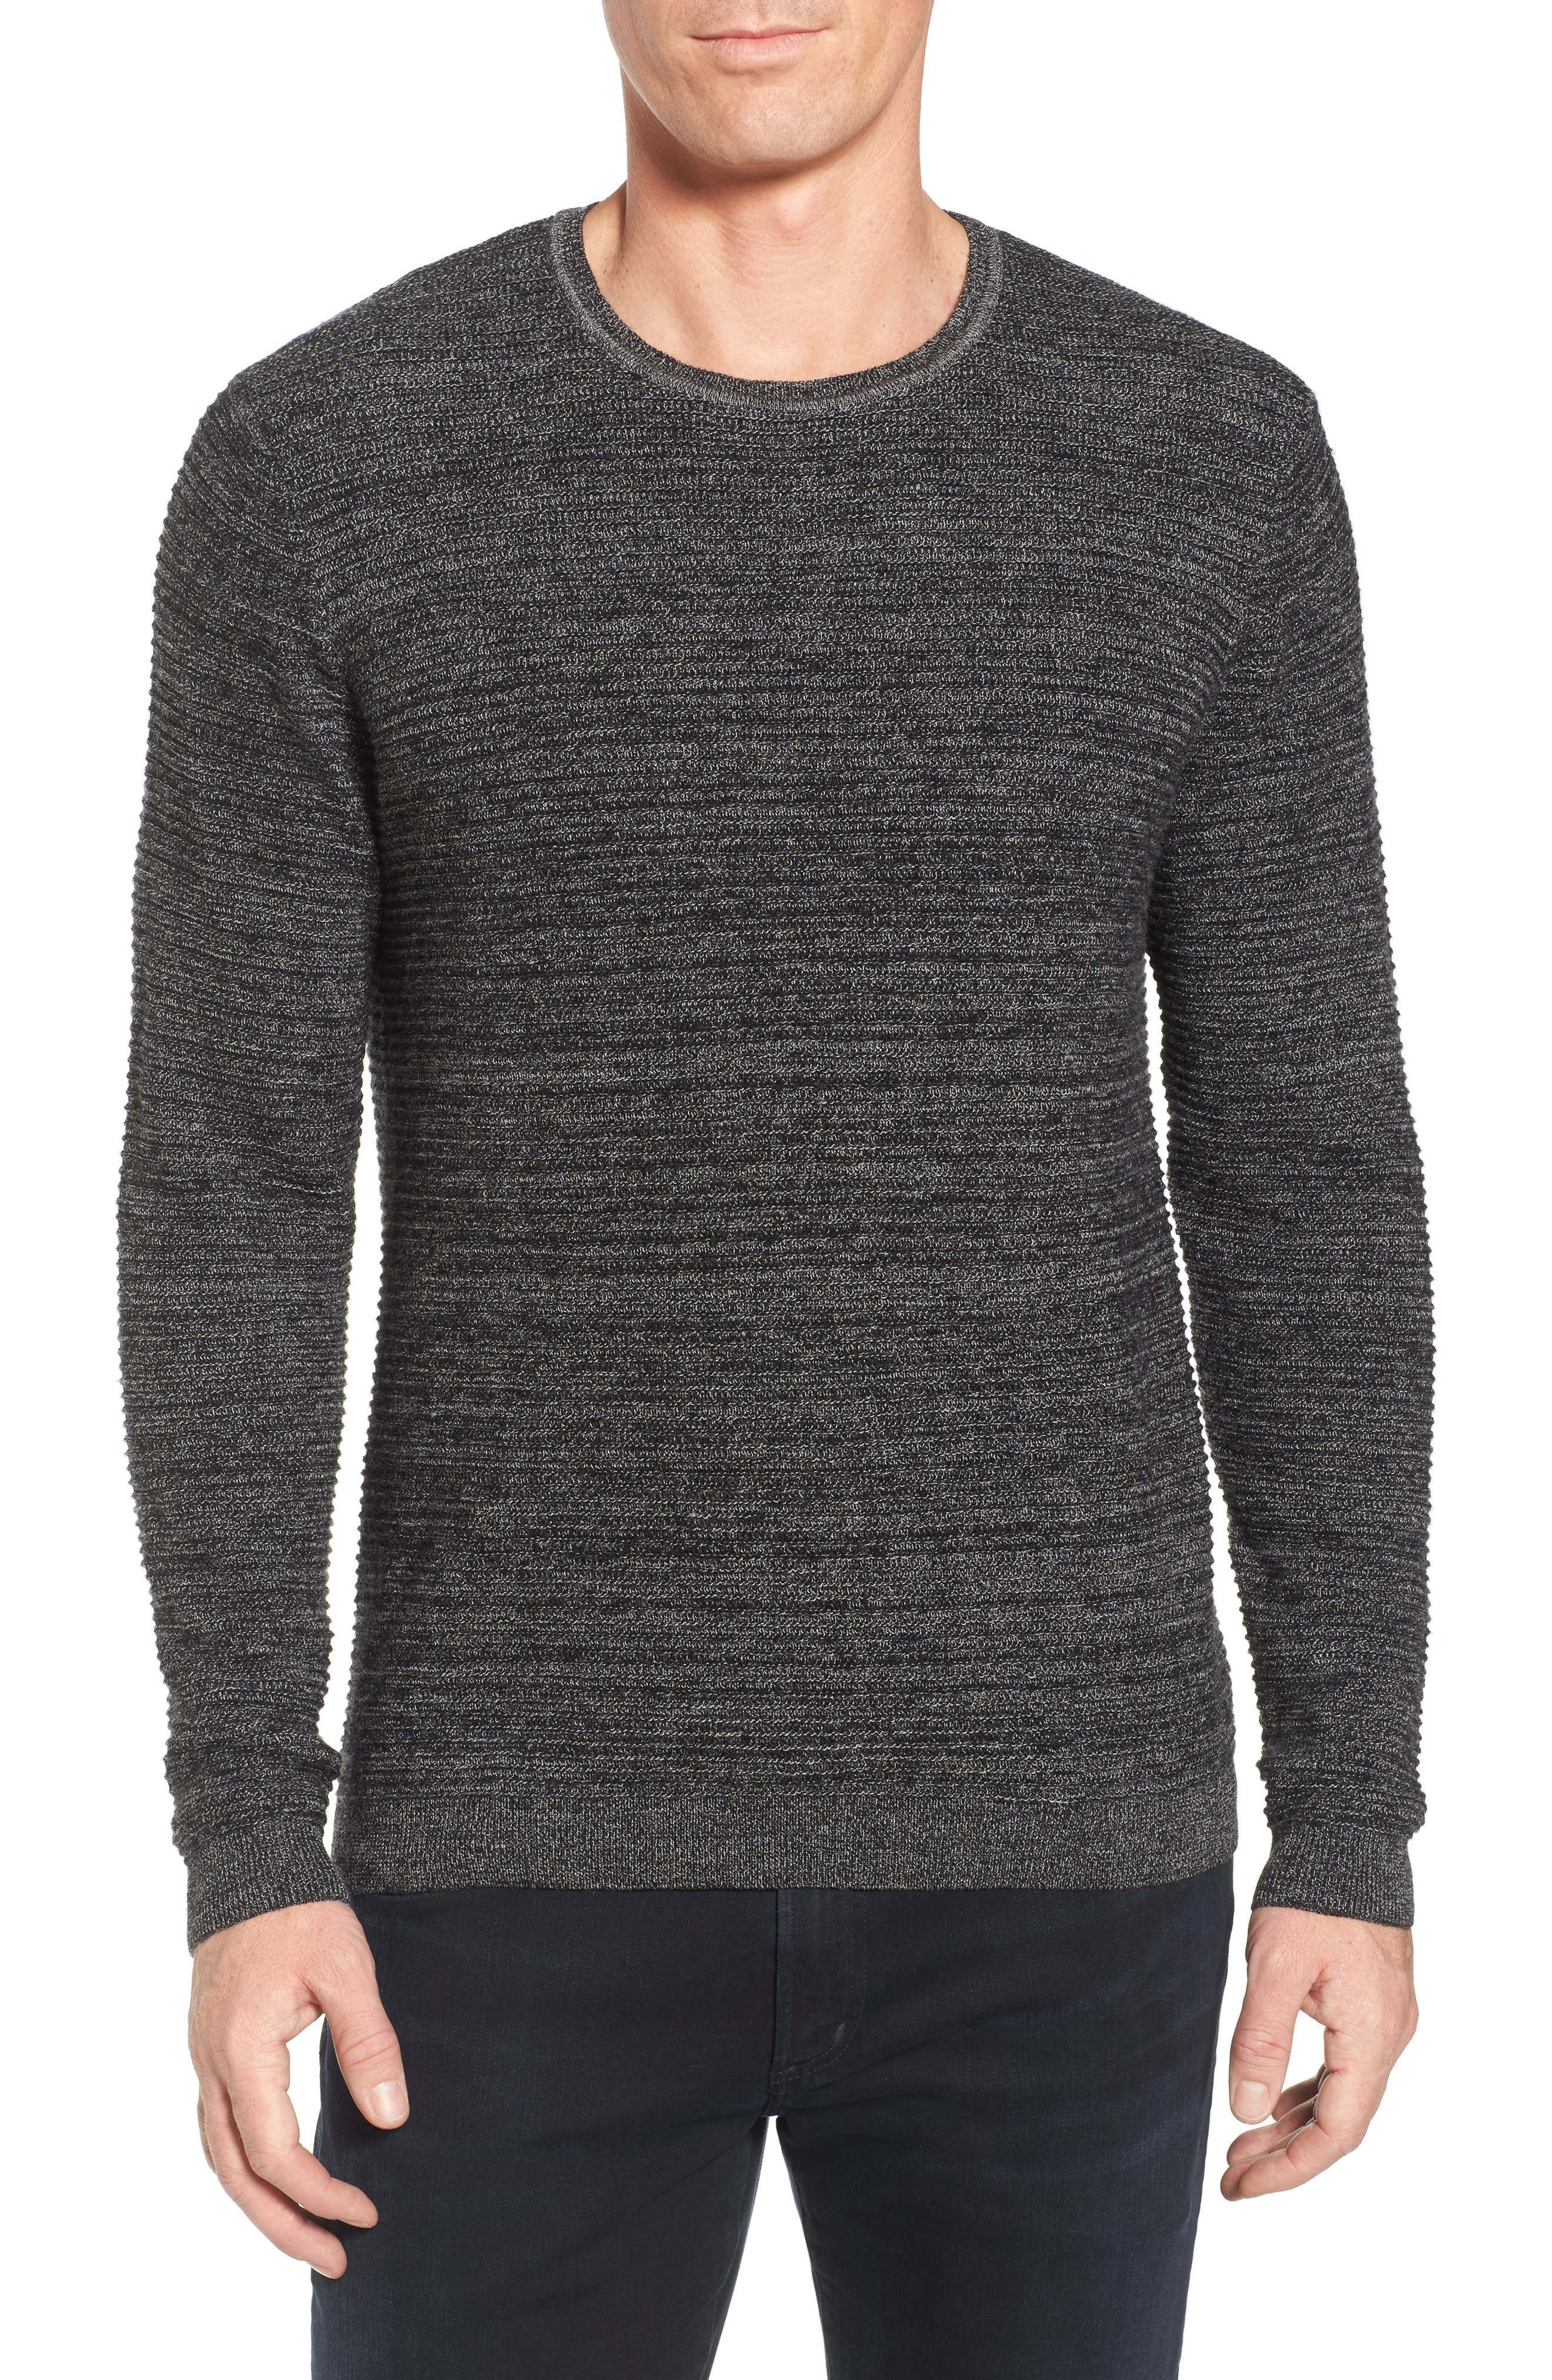 Ottoman Wool Blend Sweater,                         Main,                         color, 001